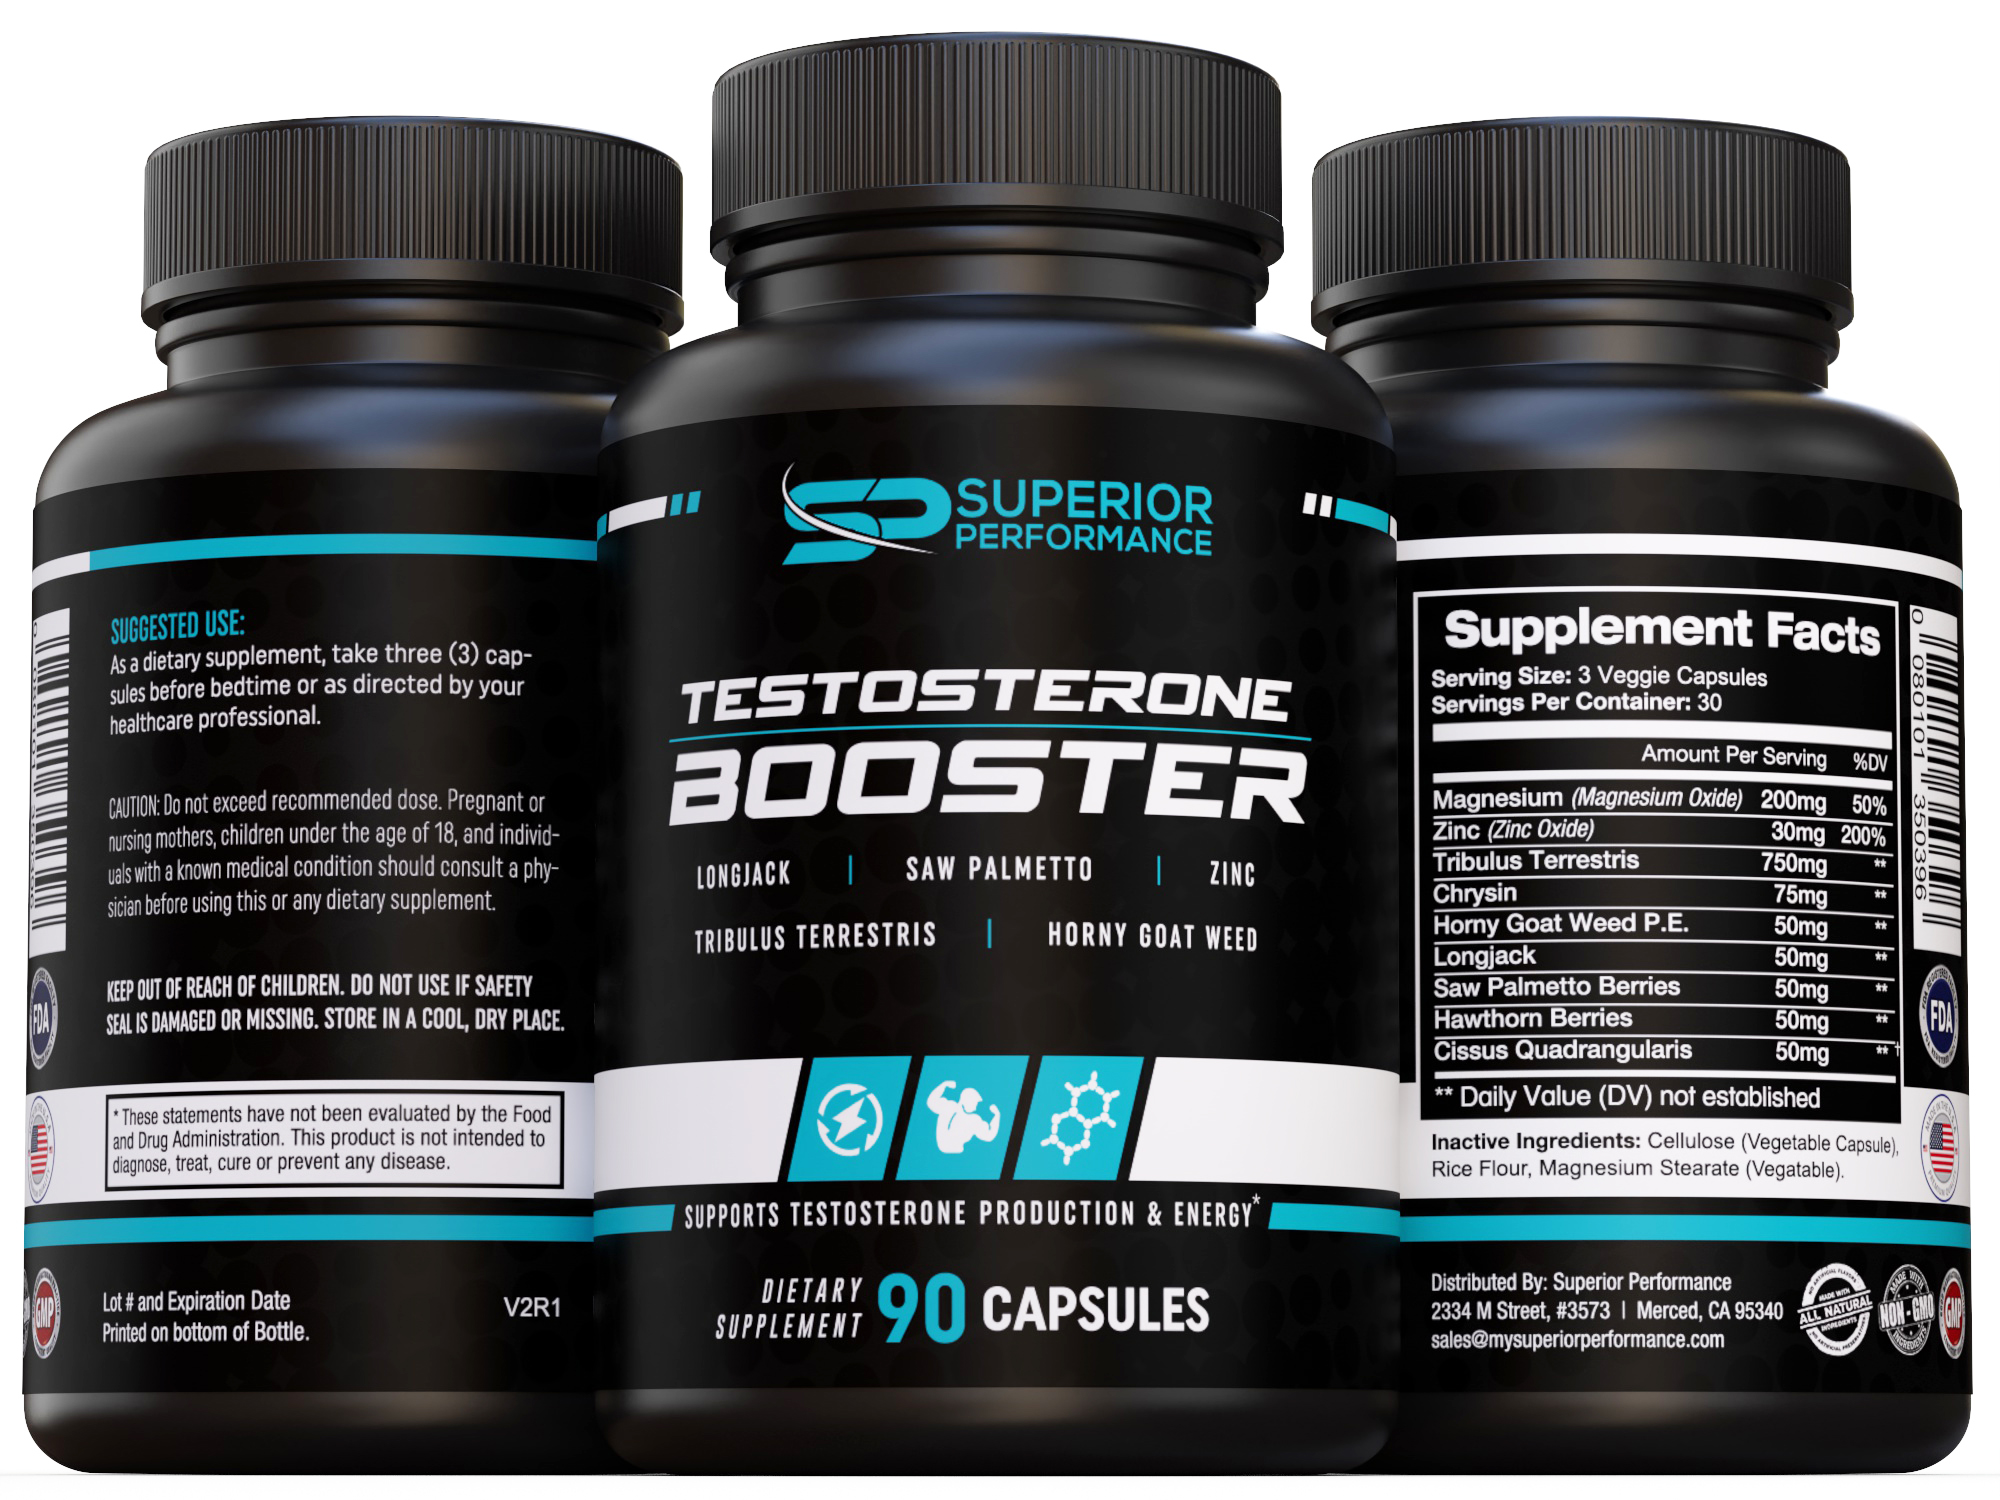 Testosterone Booster – Superior Performance